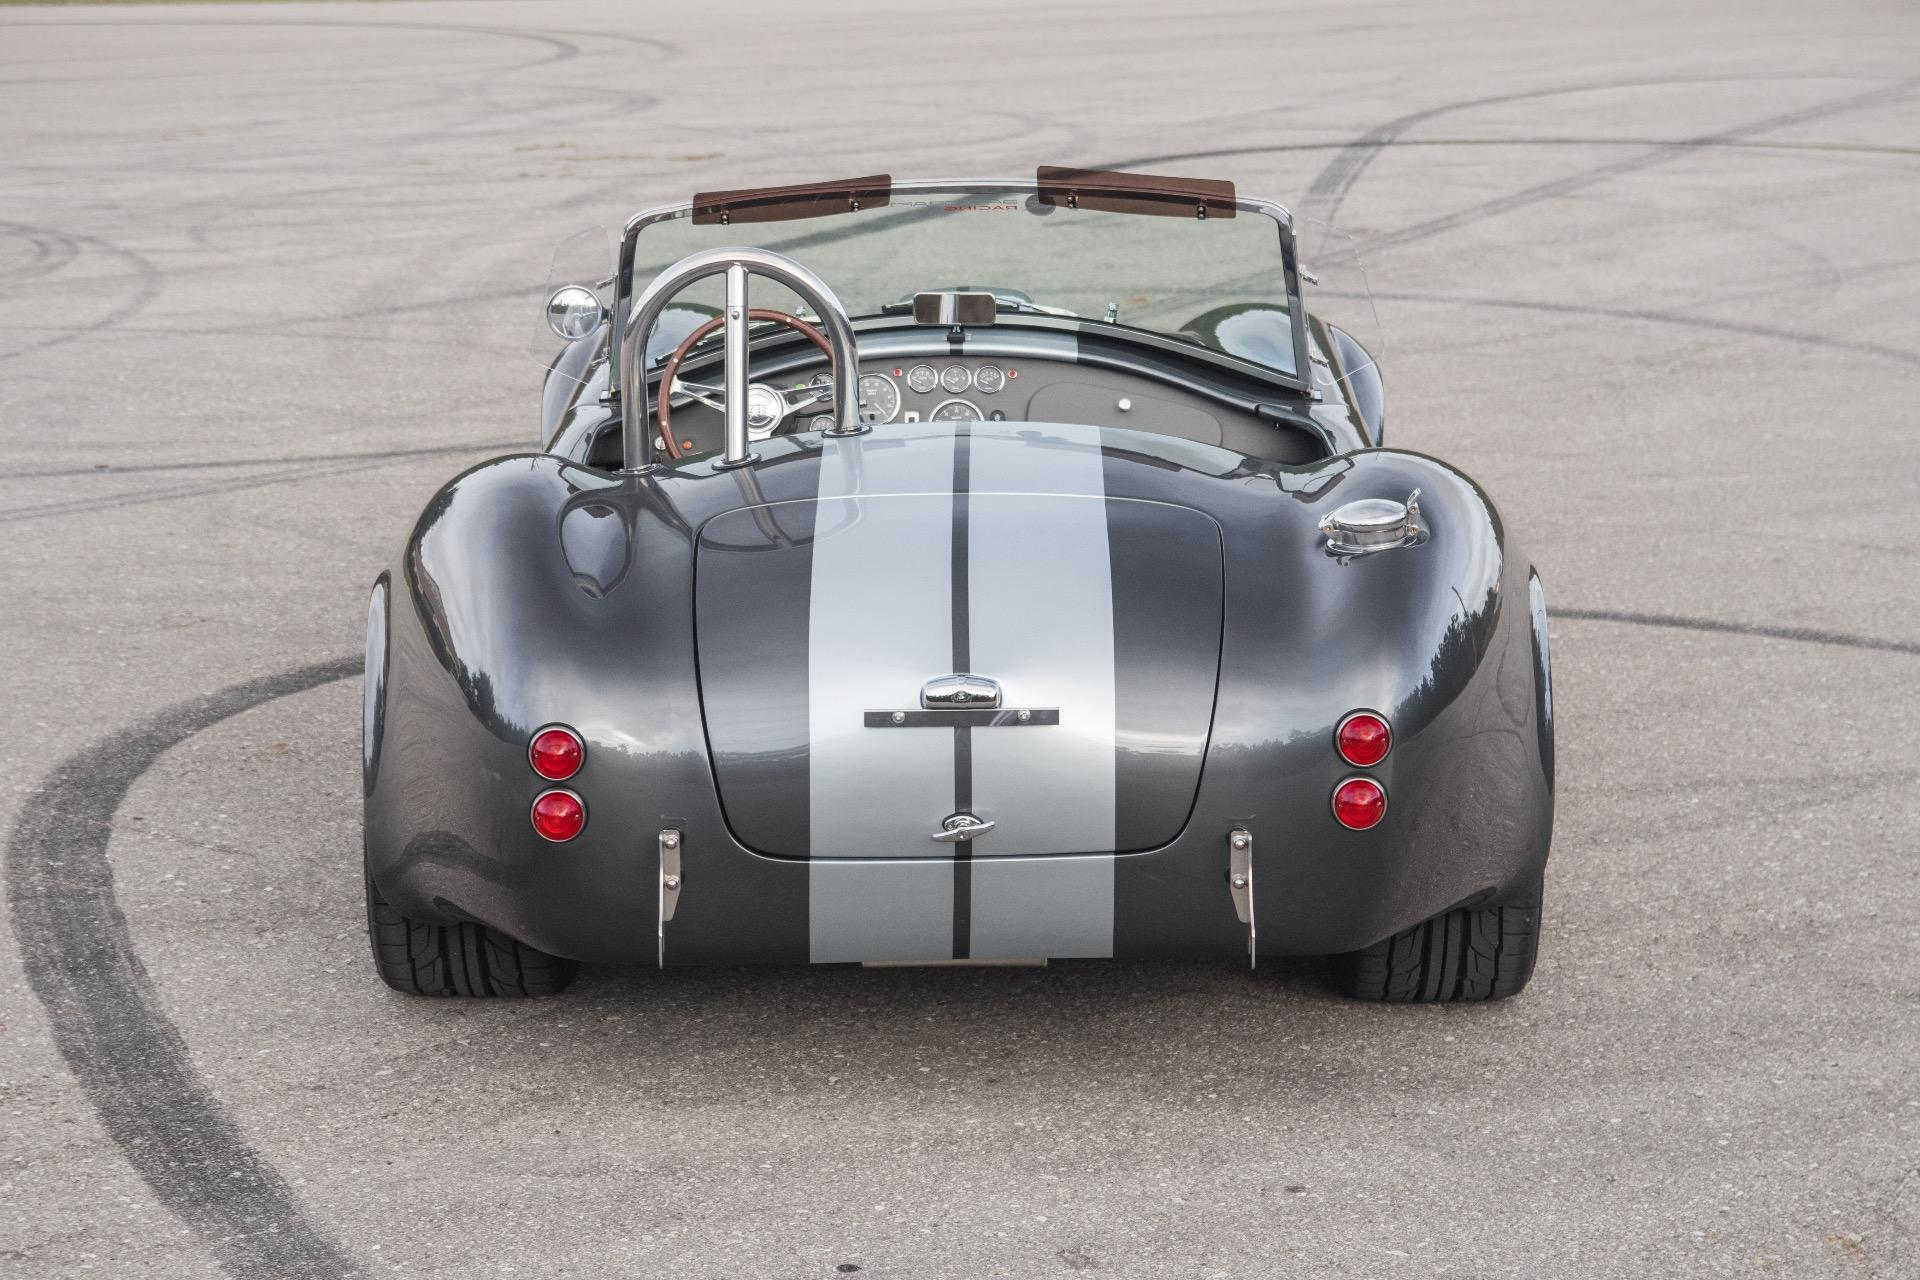 1965 Backdraft Cobra 50 Coyote Automatic Trans For Sale